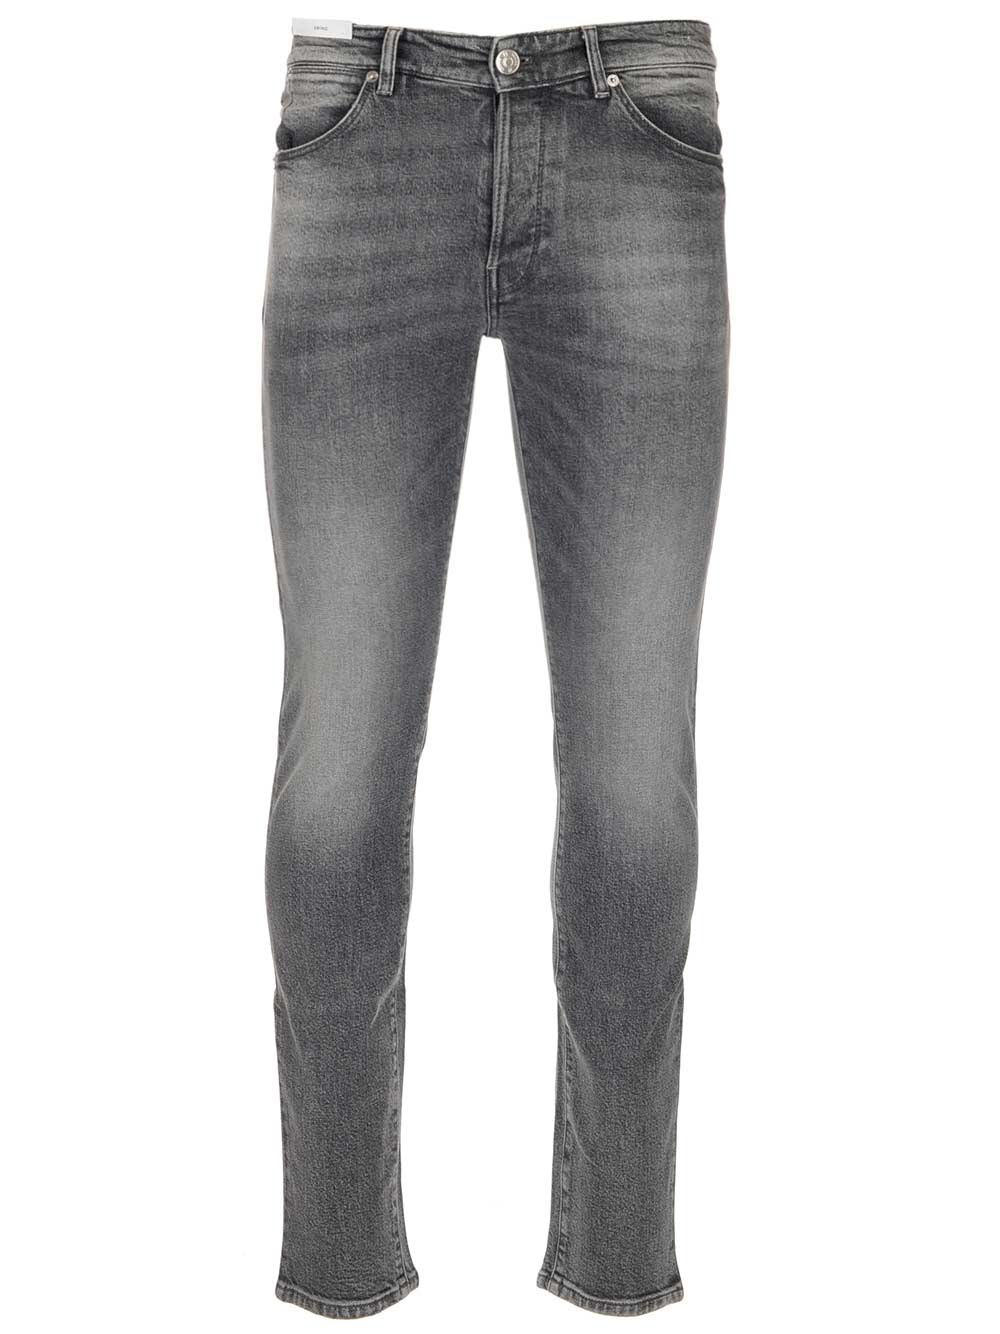 PT TORINO Stone Washed Gray Jeans